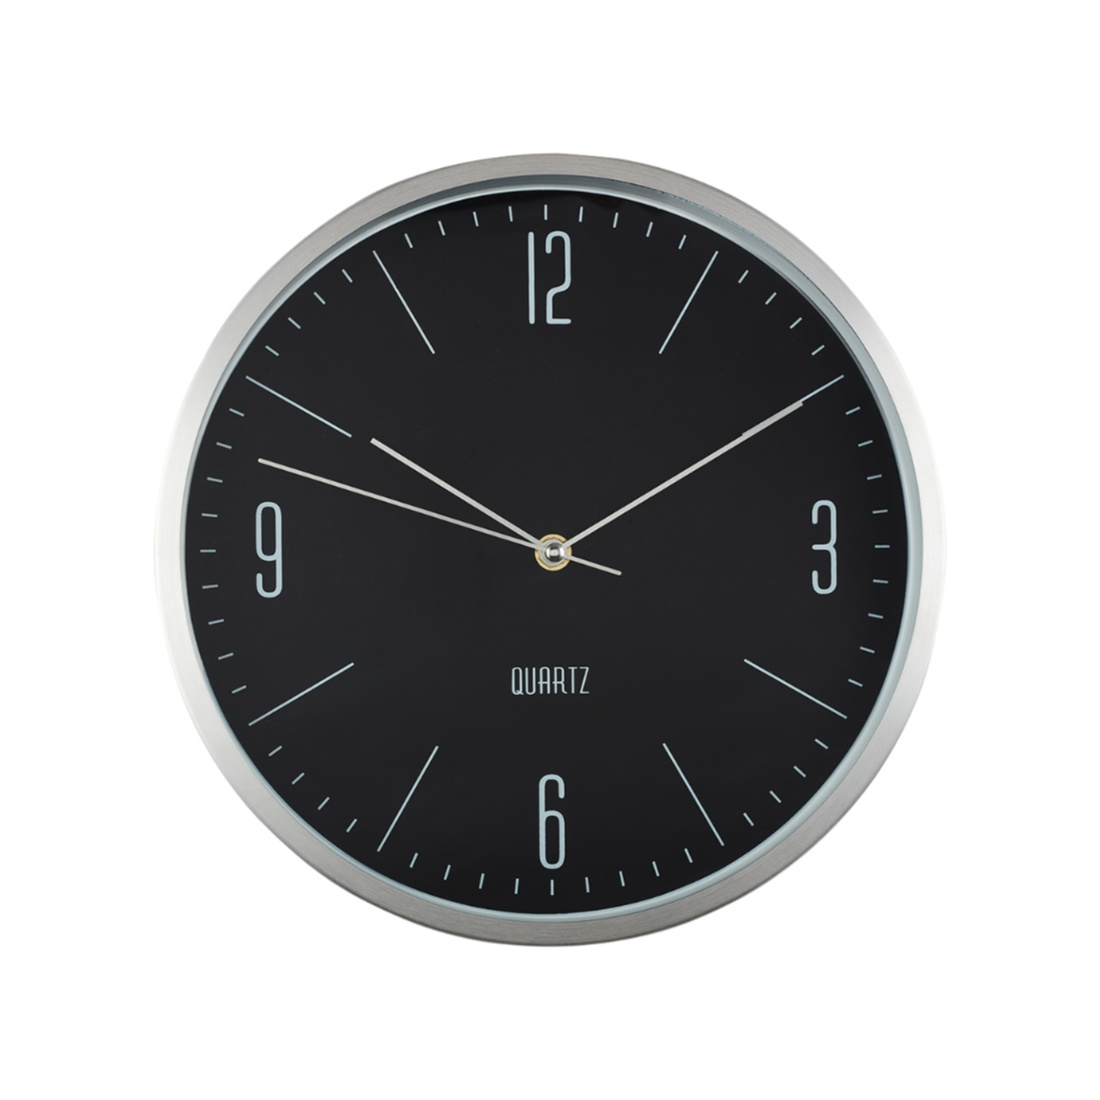 Aeon Metallic Wall Clock Plastic Modern Clocks in Black&Silver Colour by Living Essence